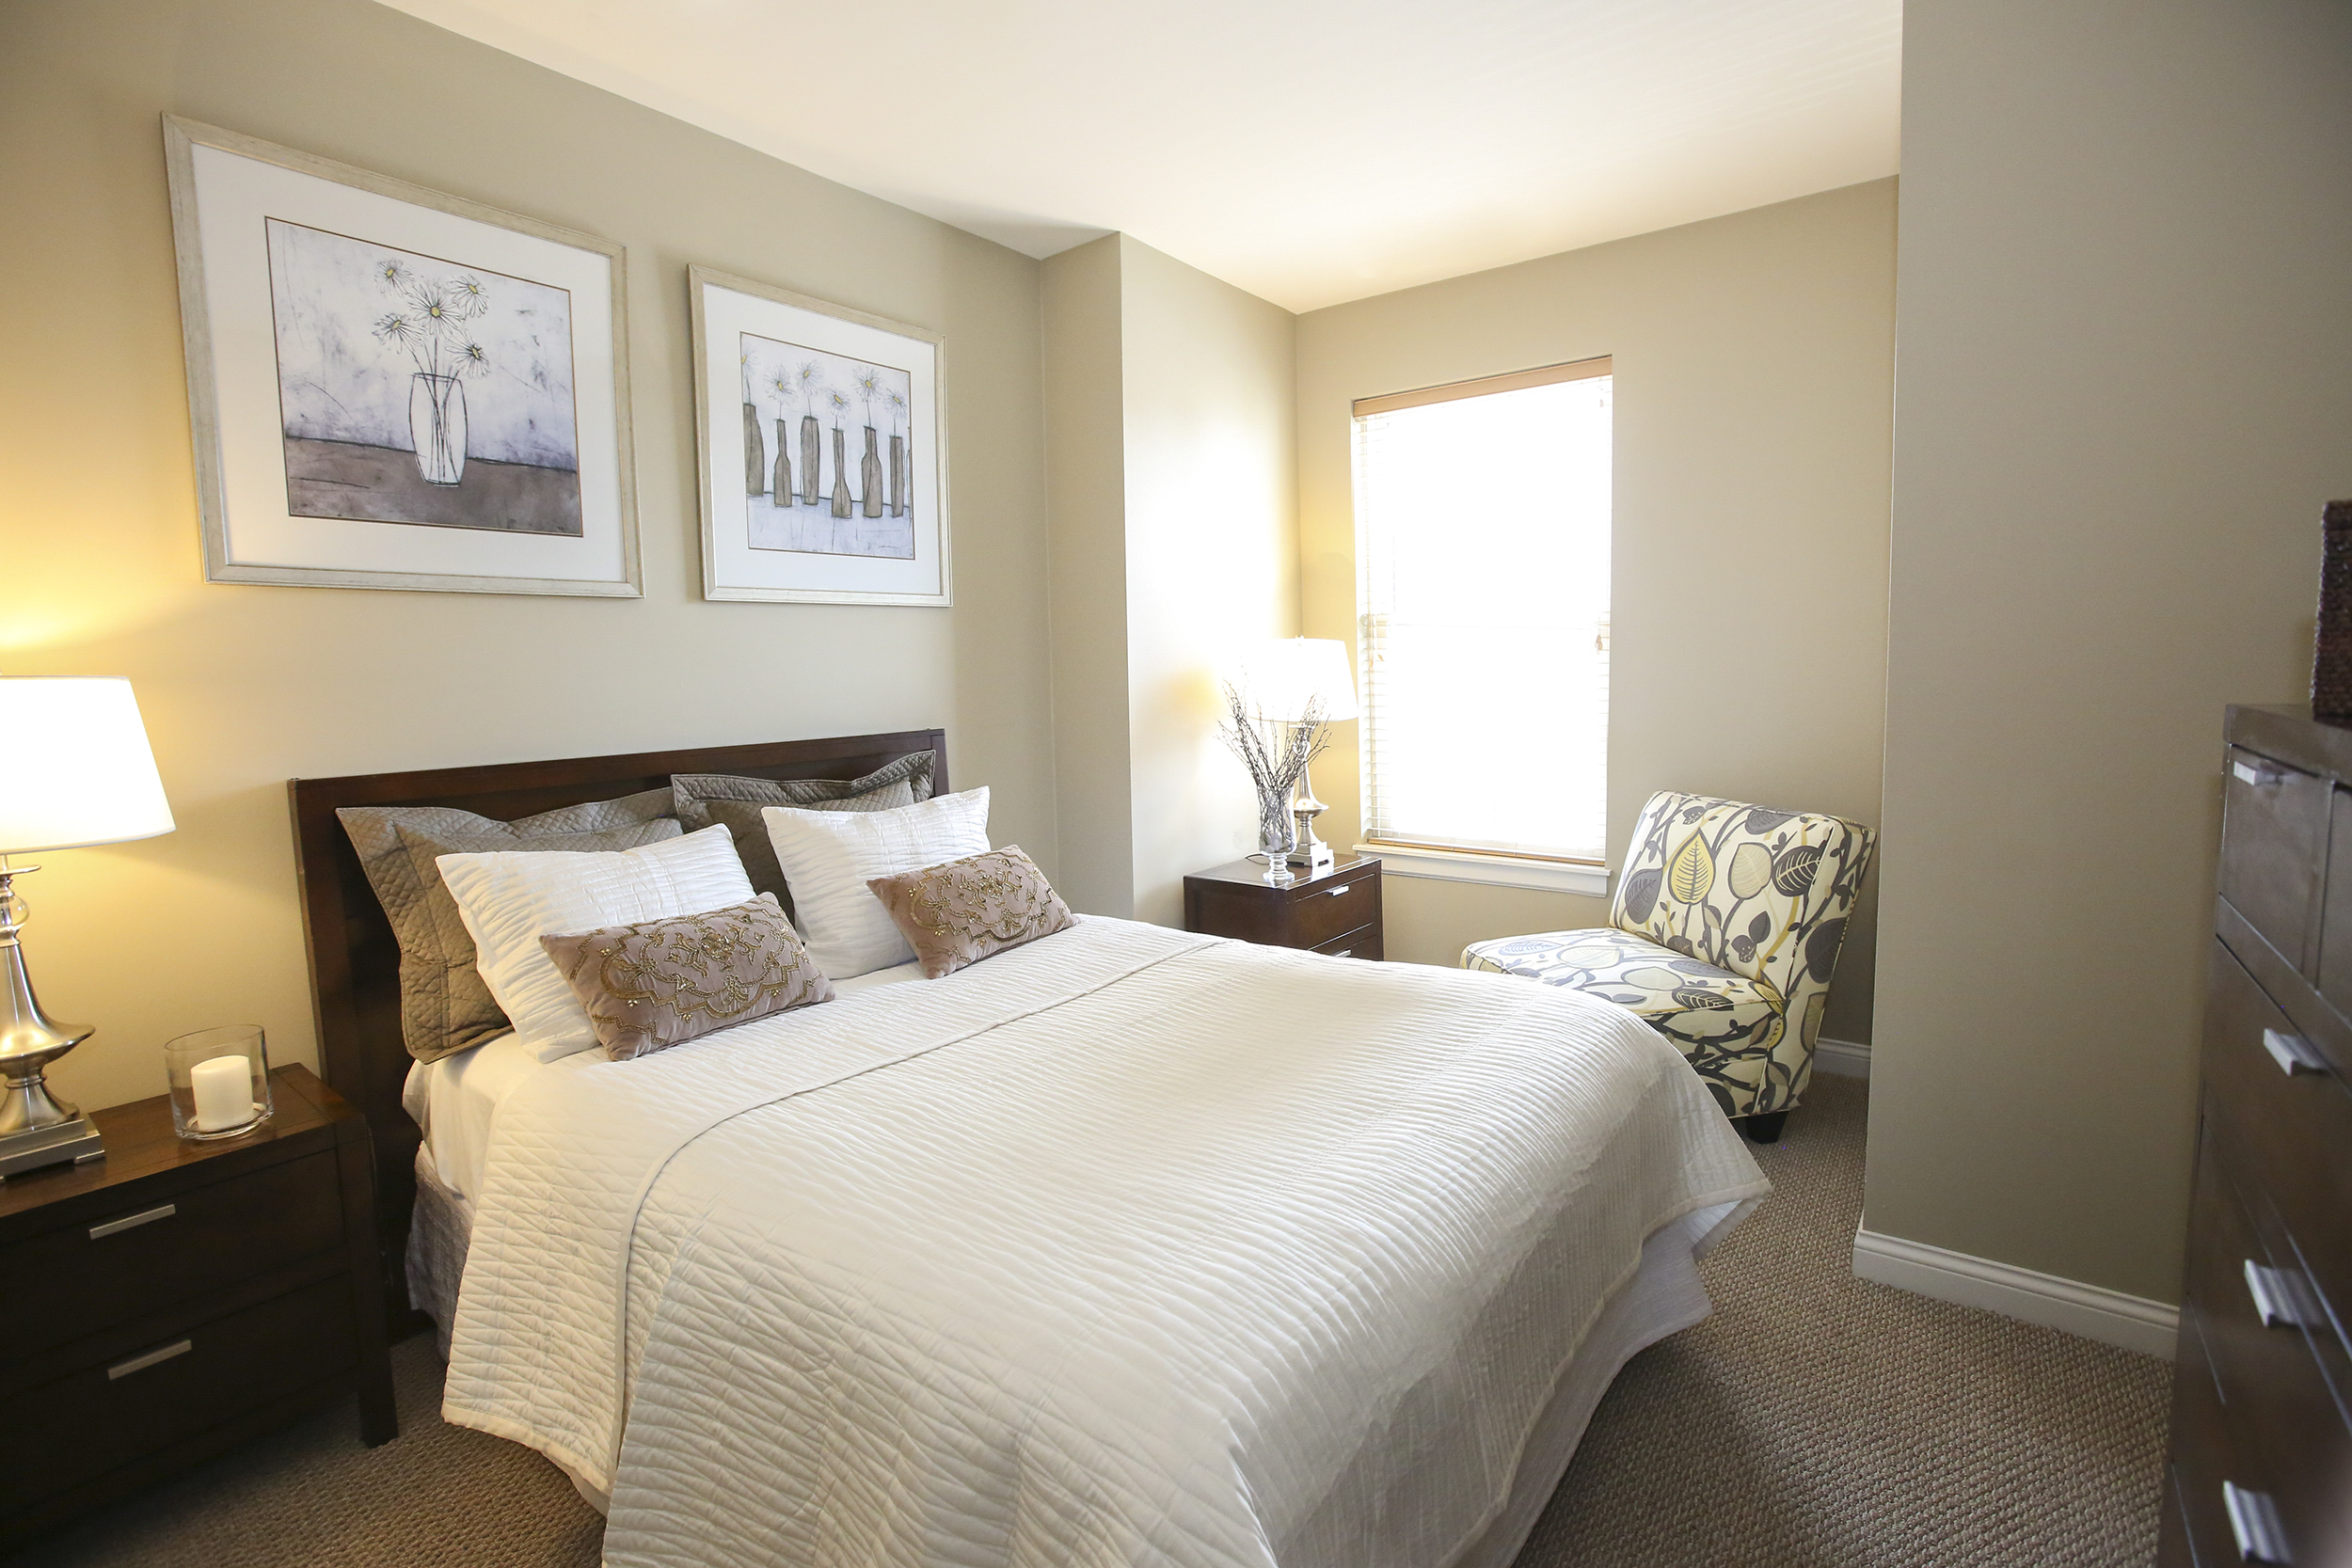 Nine foot ceiling spacious bedroom with walk-in closets